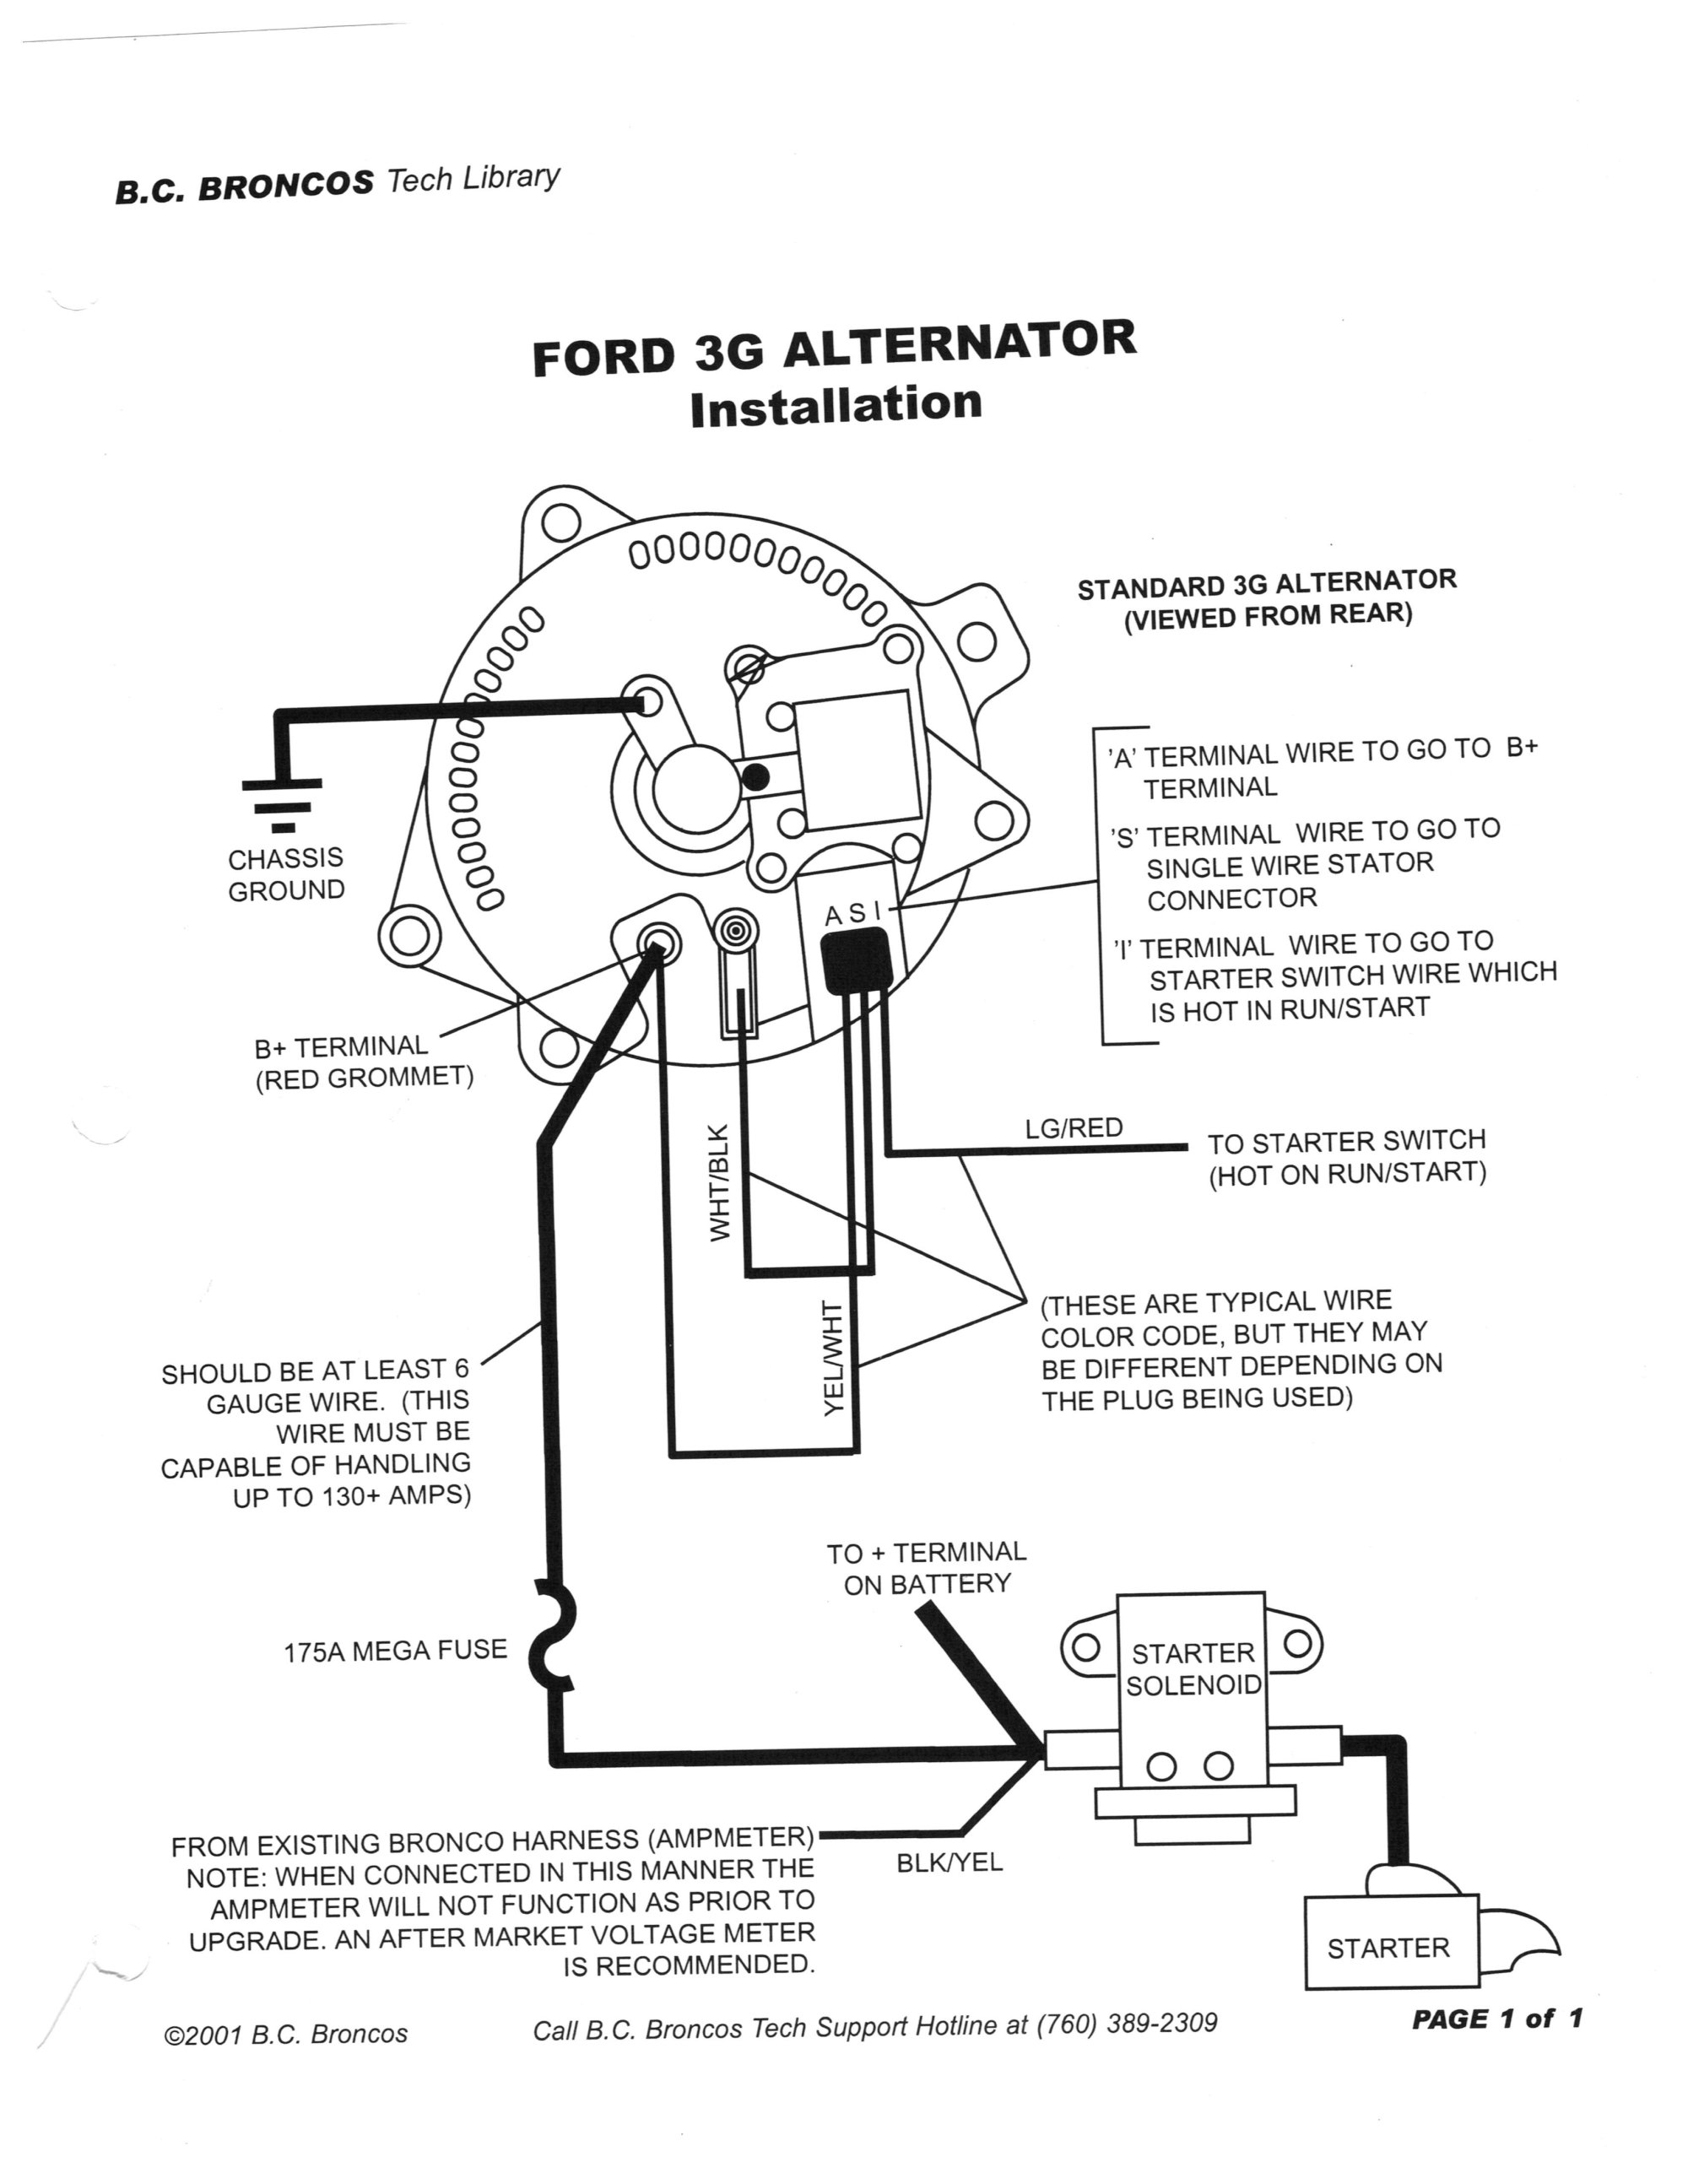 hight resolution of 1971 ford alternator wiring search wiring diagram 1972 ford mustang alternator wiring 72 ford alternator wiring